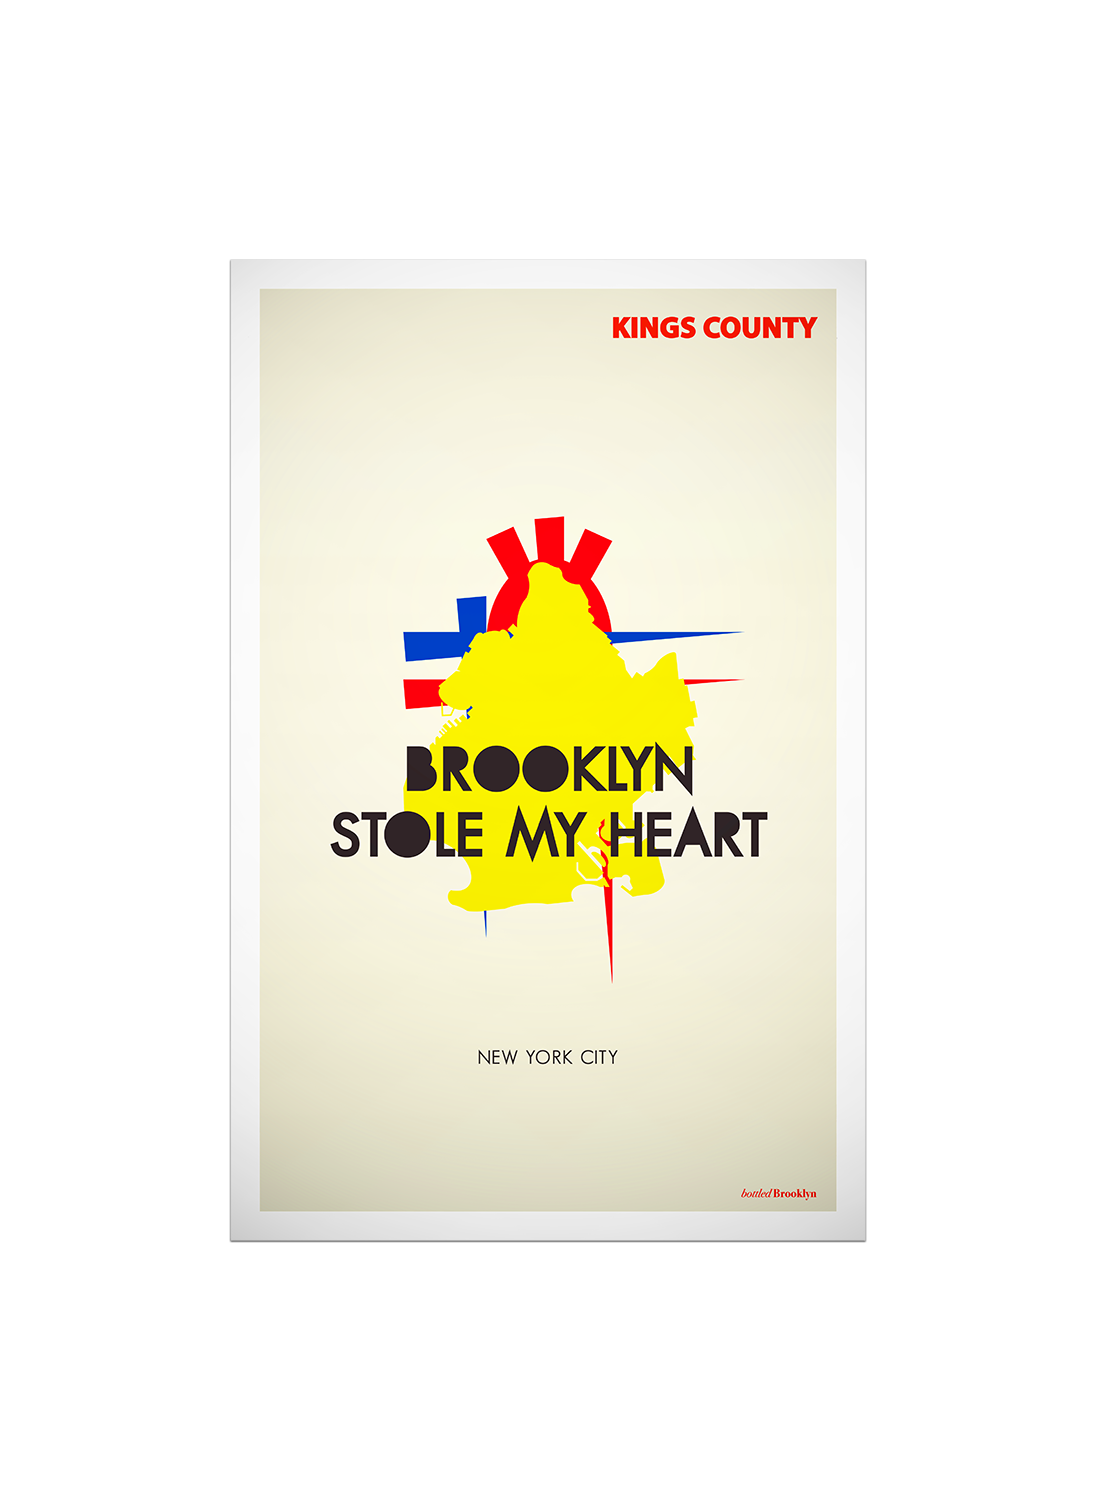 Brooklyn Stole My Heart Print | Poster